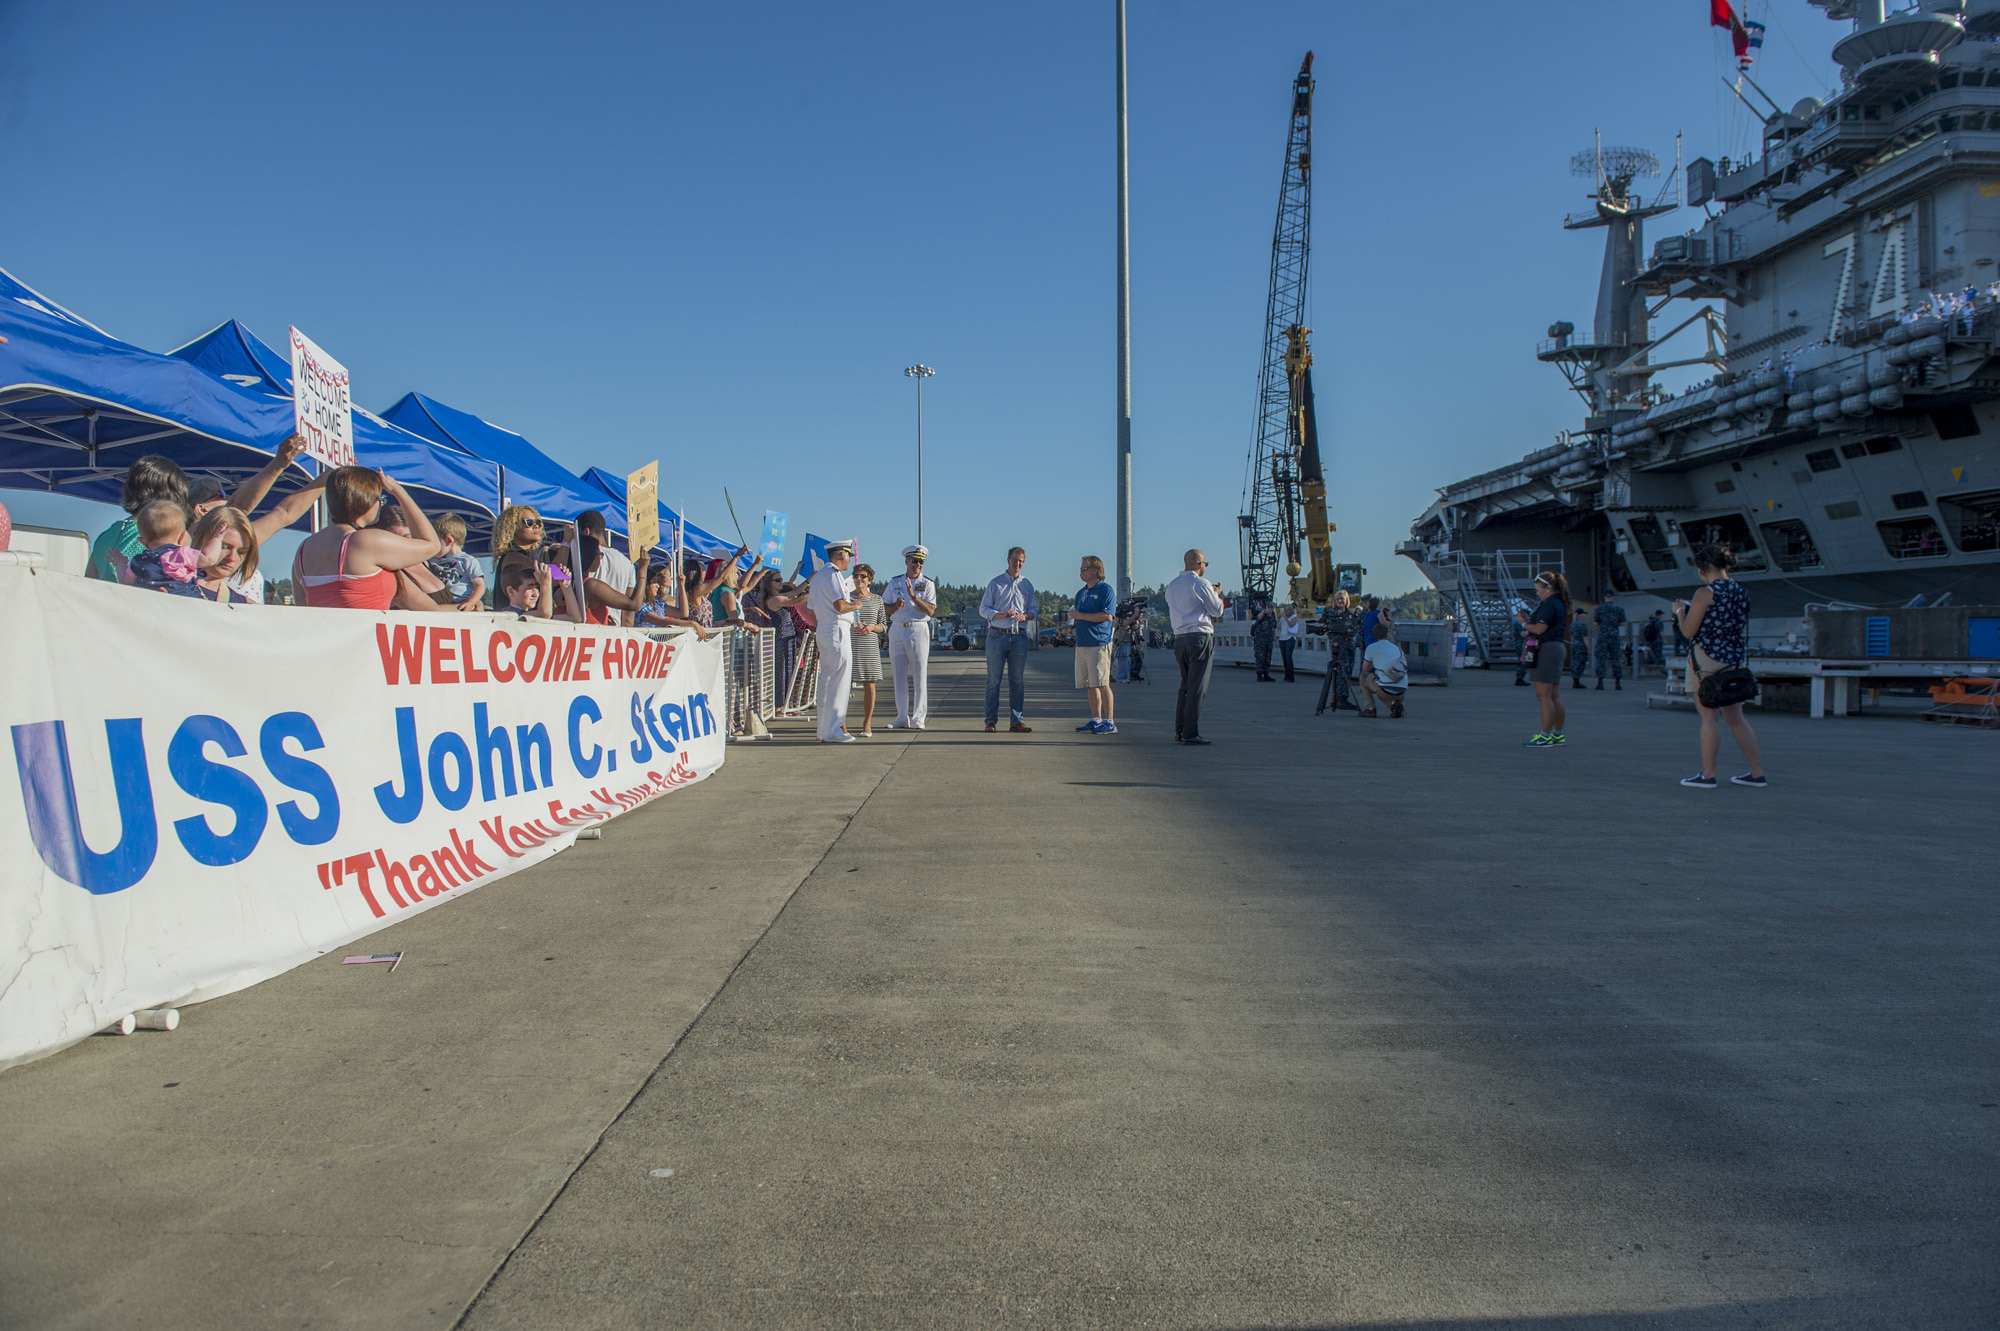 160814-N-ZP059-077 BREMERTON, Wash. (Aug. 14, 2016) — The Nimitz-class aircraft carrier USS John C. Stennis (CVN 74) is moored pier-side at Puget Sound Naval Shipyard after a seven-month deployment. Providing a ready force supporting security and stability in the Indo-Asia-Pacific, Stennis is returning from a regularly scheduled 7th Fleet deployment as part of the Great Green Fleet and Rim of the Pacific 2016, which included 26 nations, more than 40 ships and submarines, more than 200 aircraft and 25,000 personnel. (U.S. Navy photo by Mass Communication Specialist 2nd Class Jacob G. Sisco/Released)